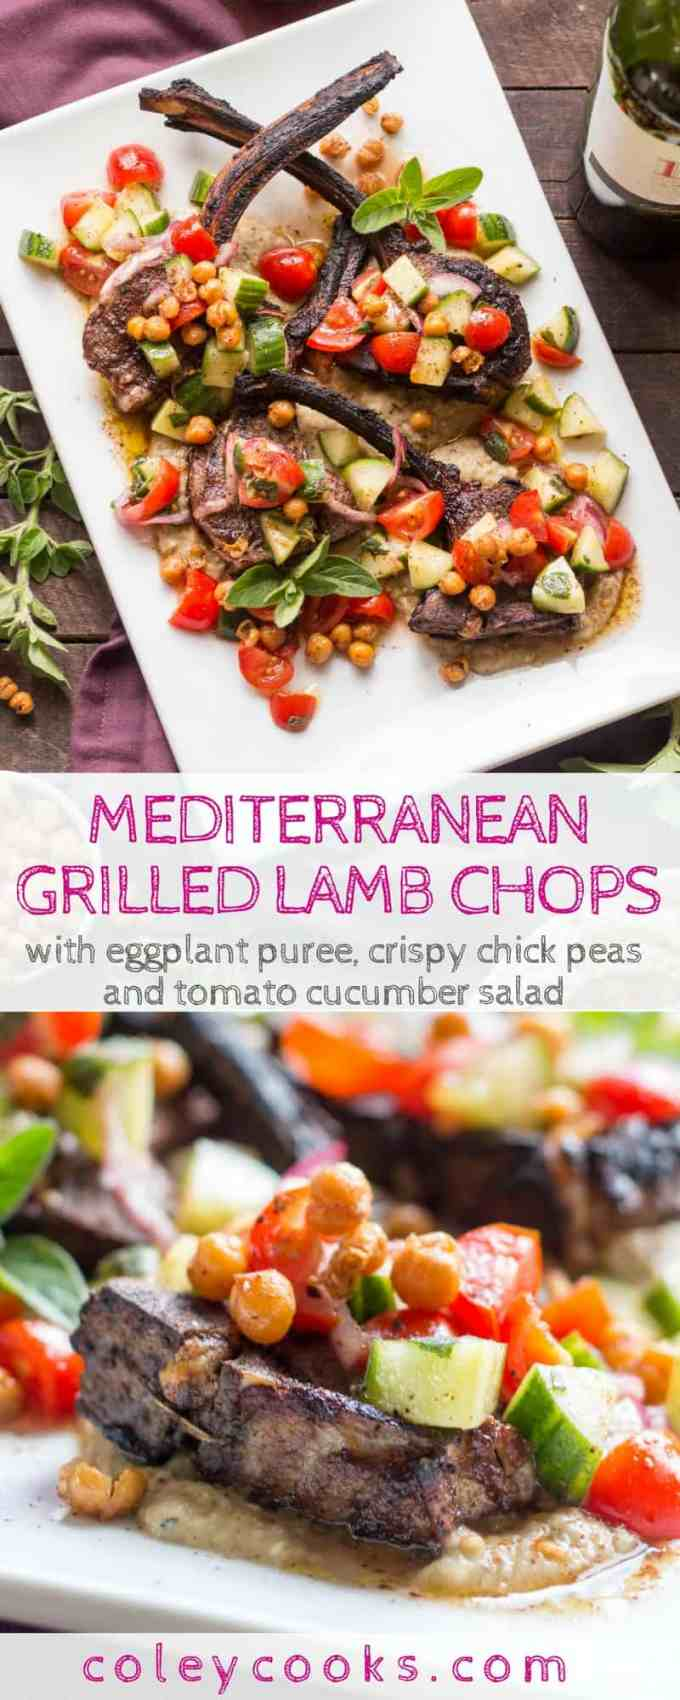 MEDITERRANEAN GRILLED LAMB CHOPS   Easy recipe for grilled lamb chops with Eggplant Puree, Tomatoes, Cucumbers + Crispy Chick Peas. Grilling recipe, easy lamb recipe, summer recipe, healthy recipe, #paleo #glutenfree   ColeyCooks.com